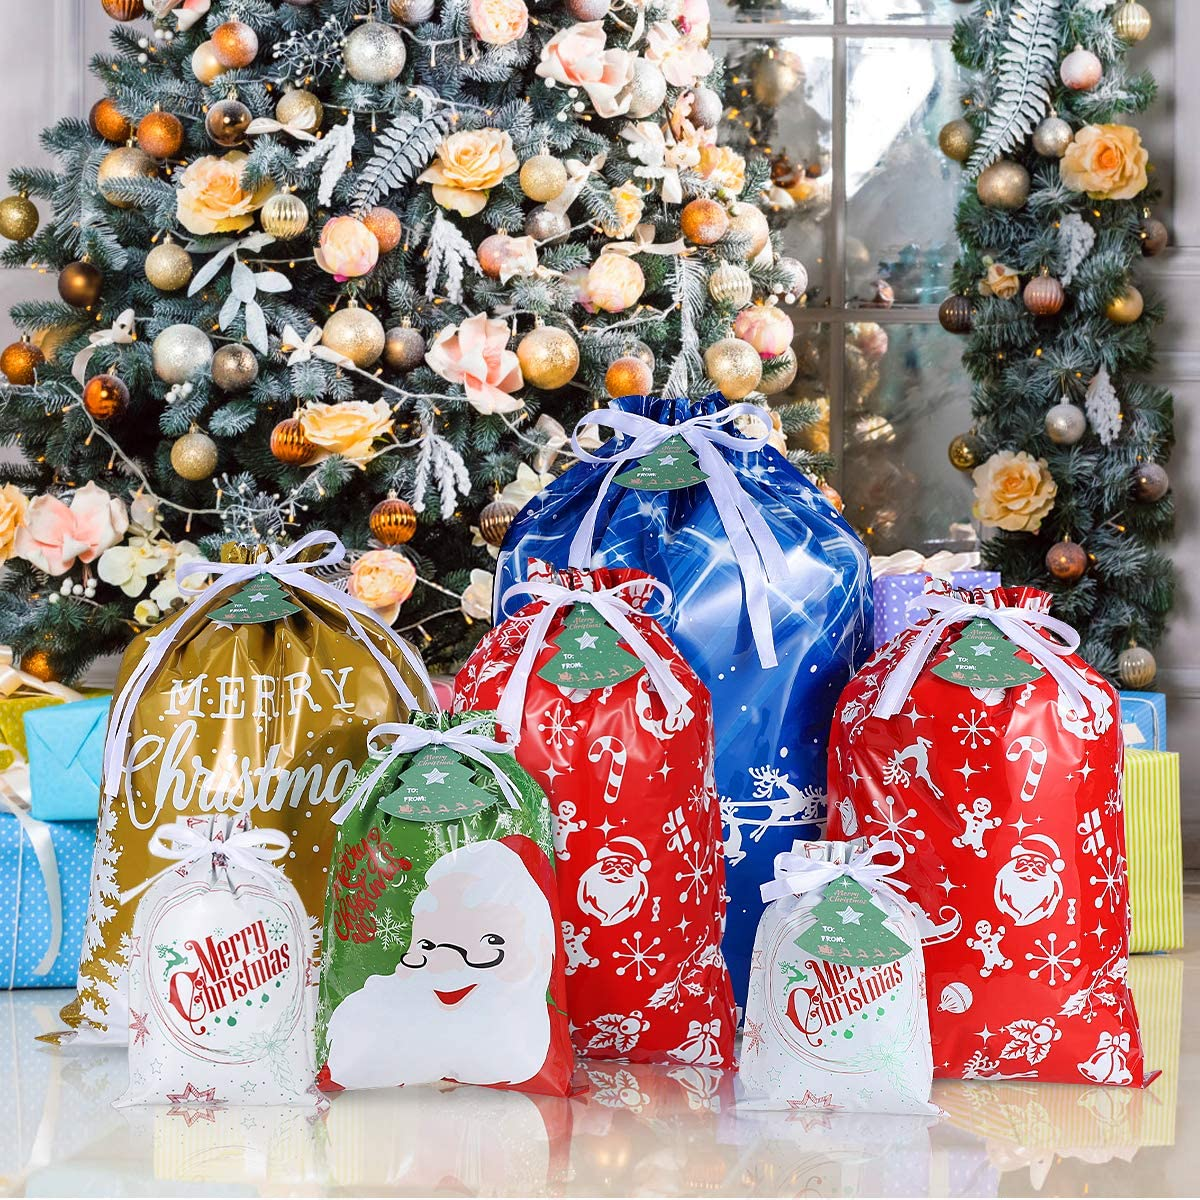 Christmas Gift Bags, Christmas Drawstring Gift Bags Goodie Bags with Gift Tags 36PCS